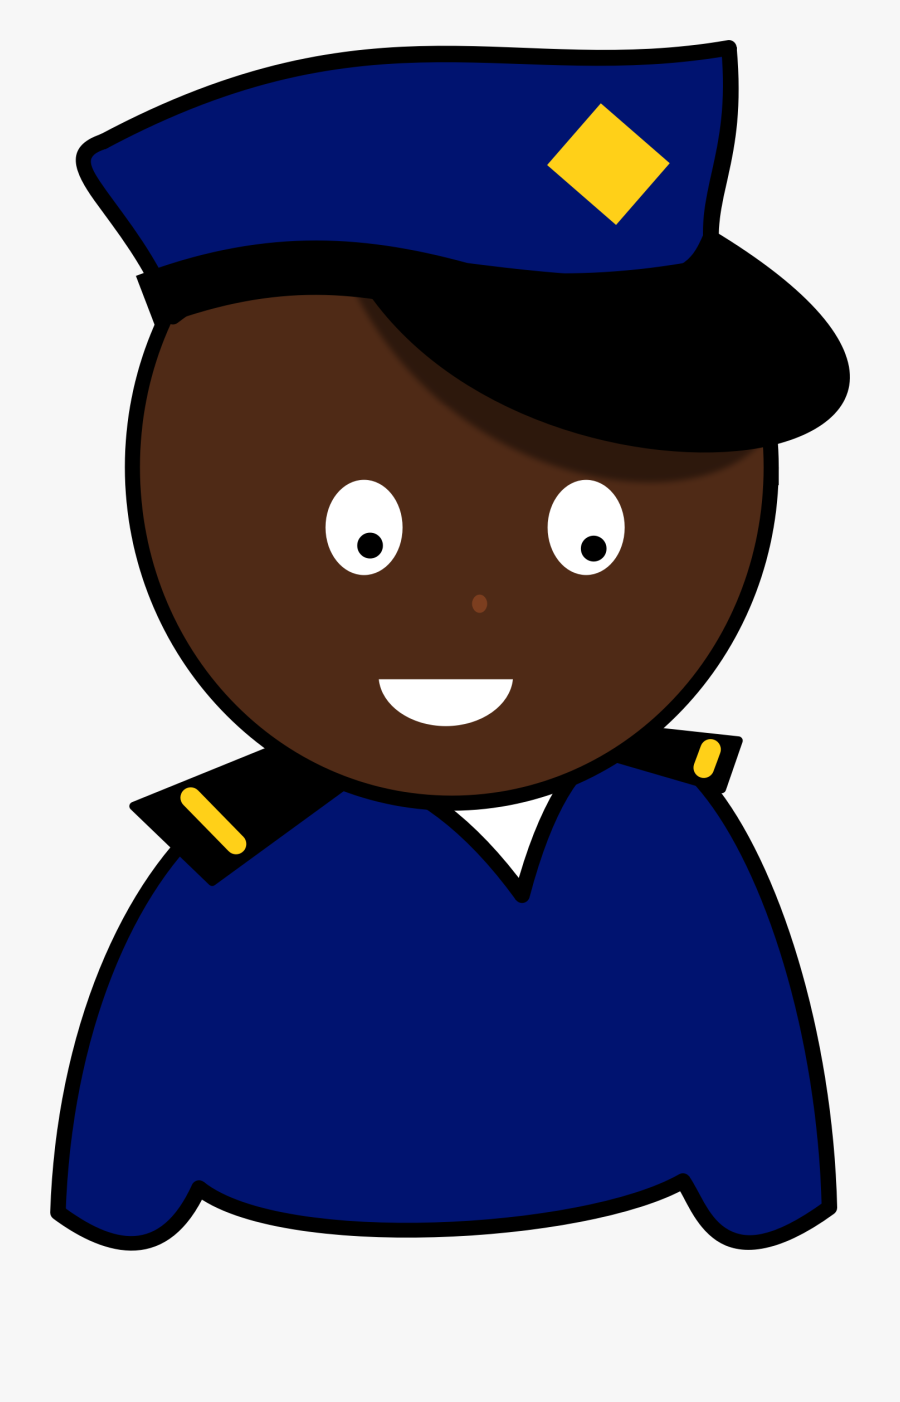 Police Officer Drawing Uniform Police Authority - Authority Drawings, Transparent Clipart